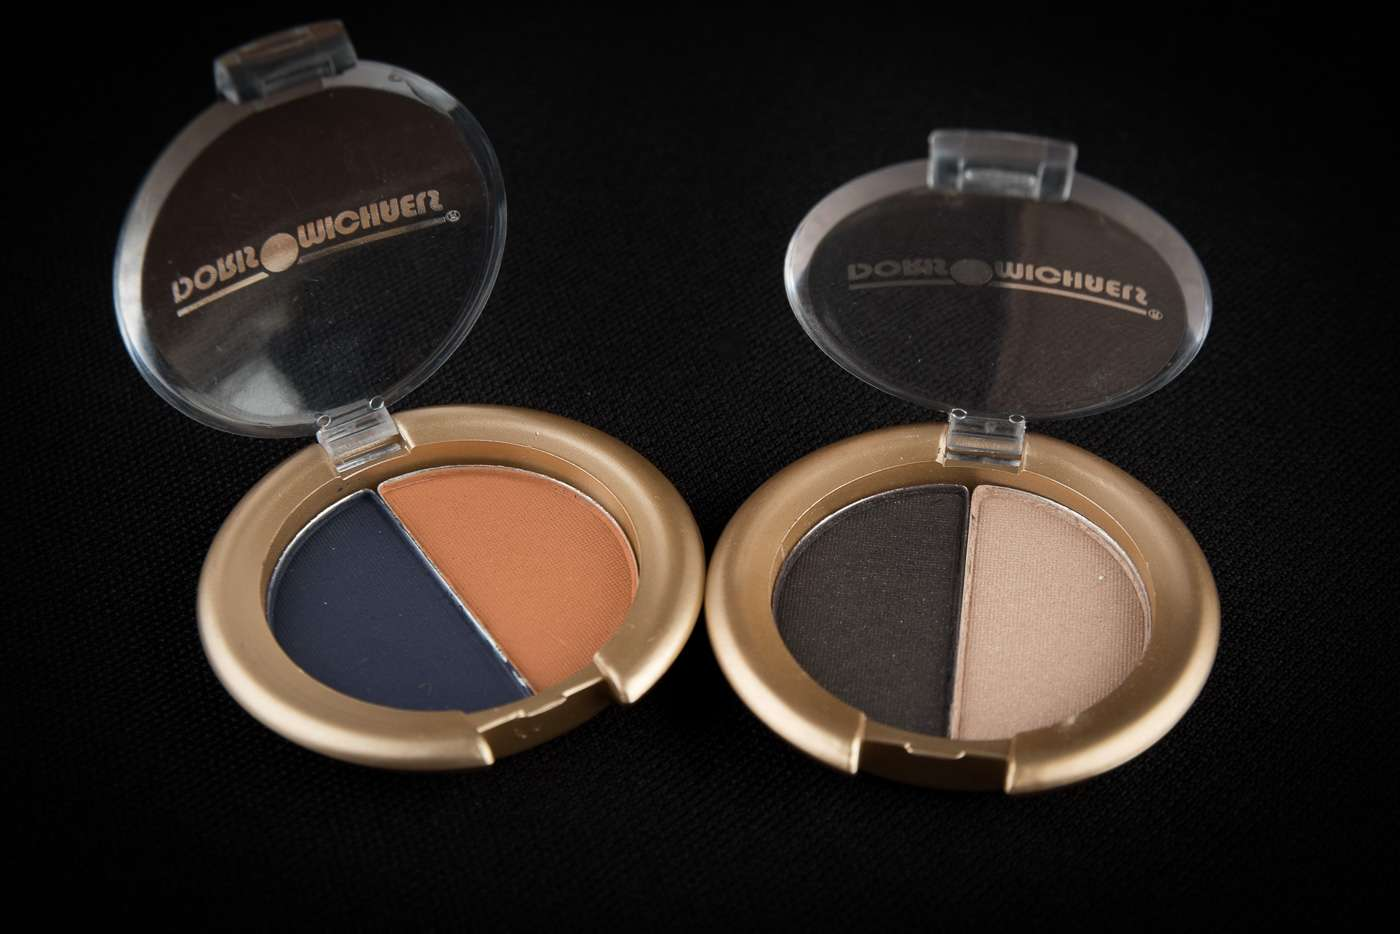 Doris Michaels eye shadow duo